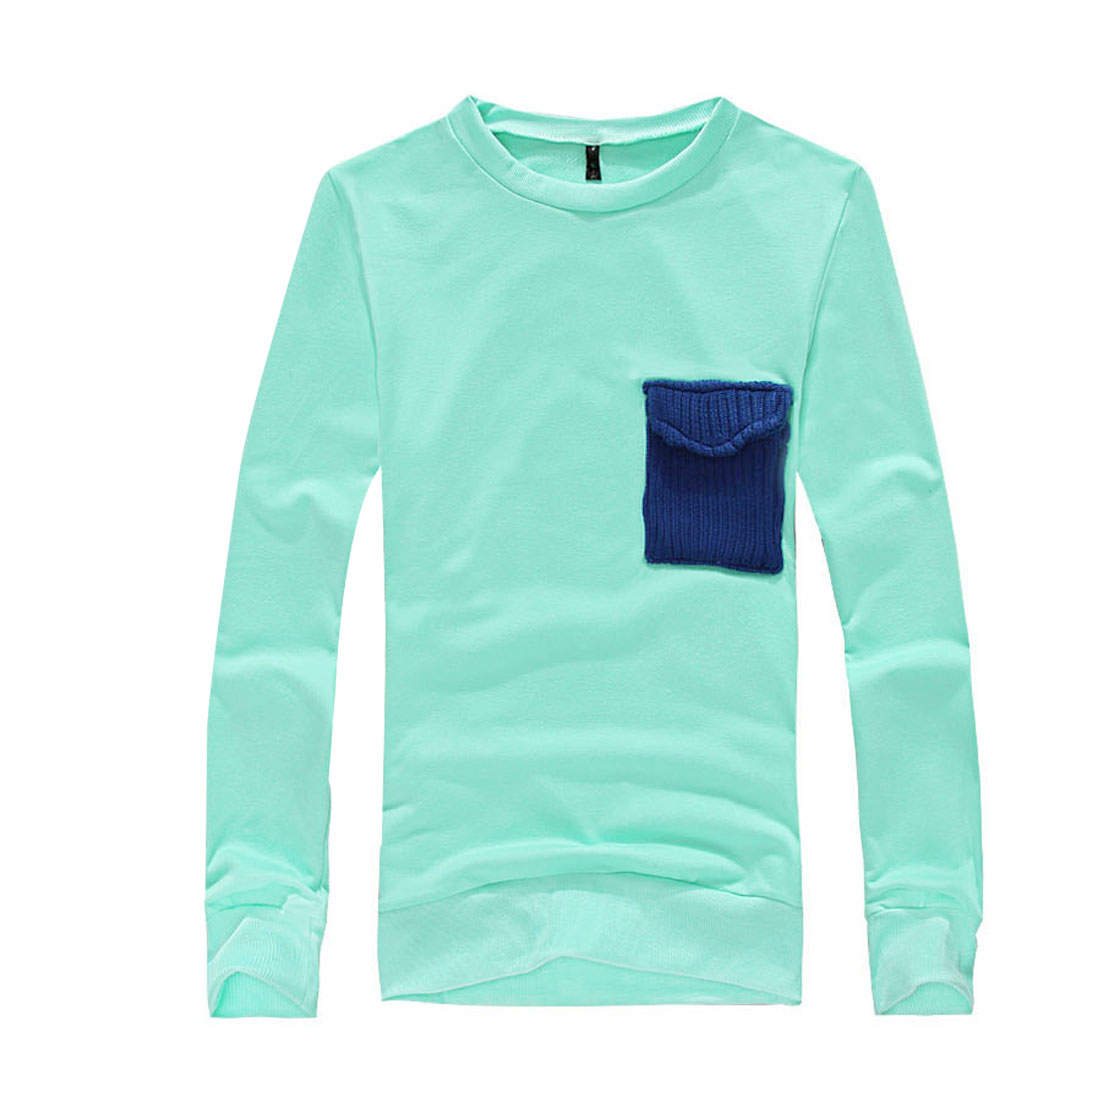 Men Mint Color Pullover Knitted Front Pocket Fashion Shirt M